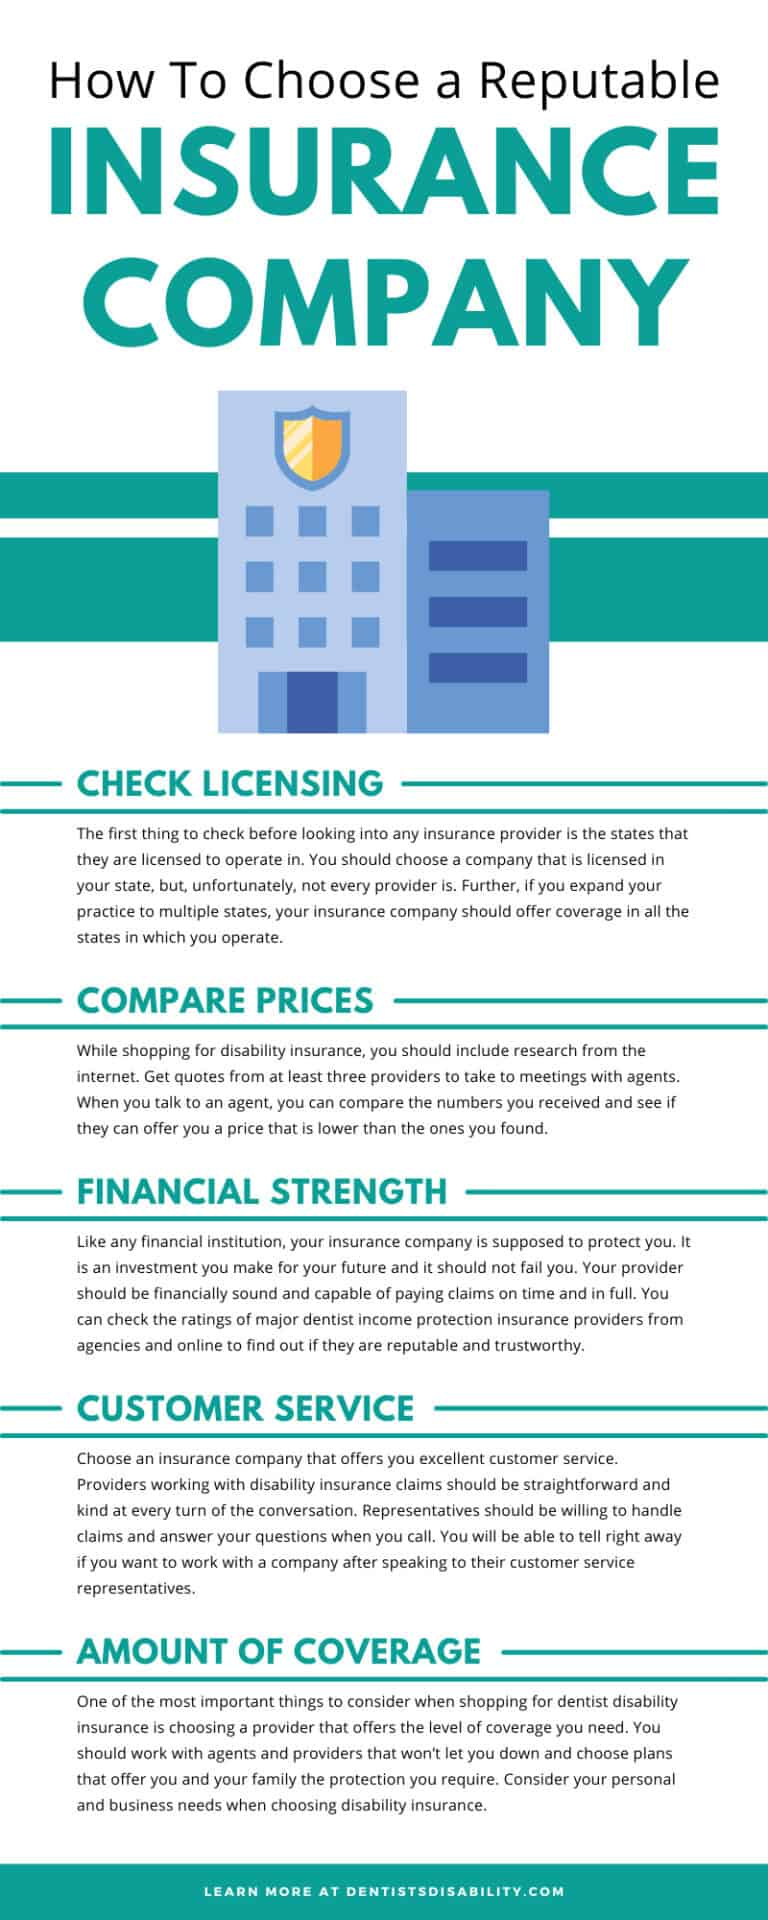 How To Choose a Reputable Insurance Company